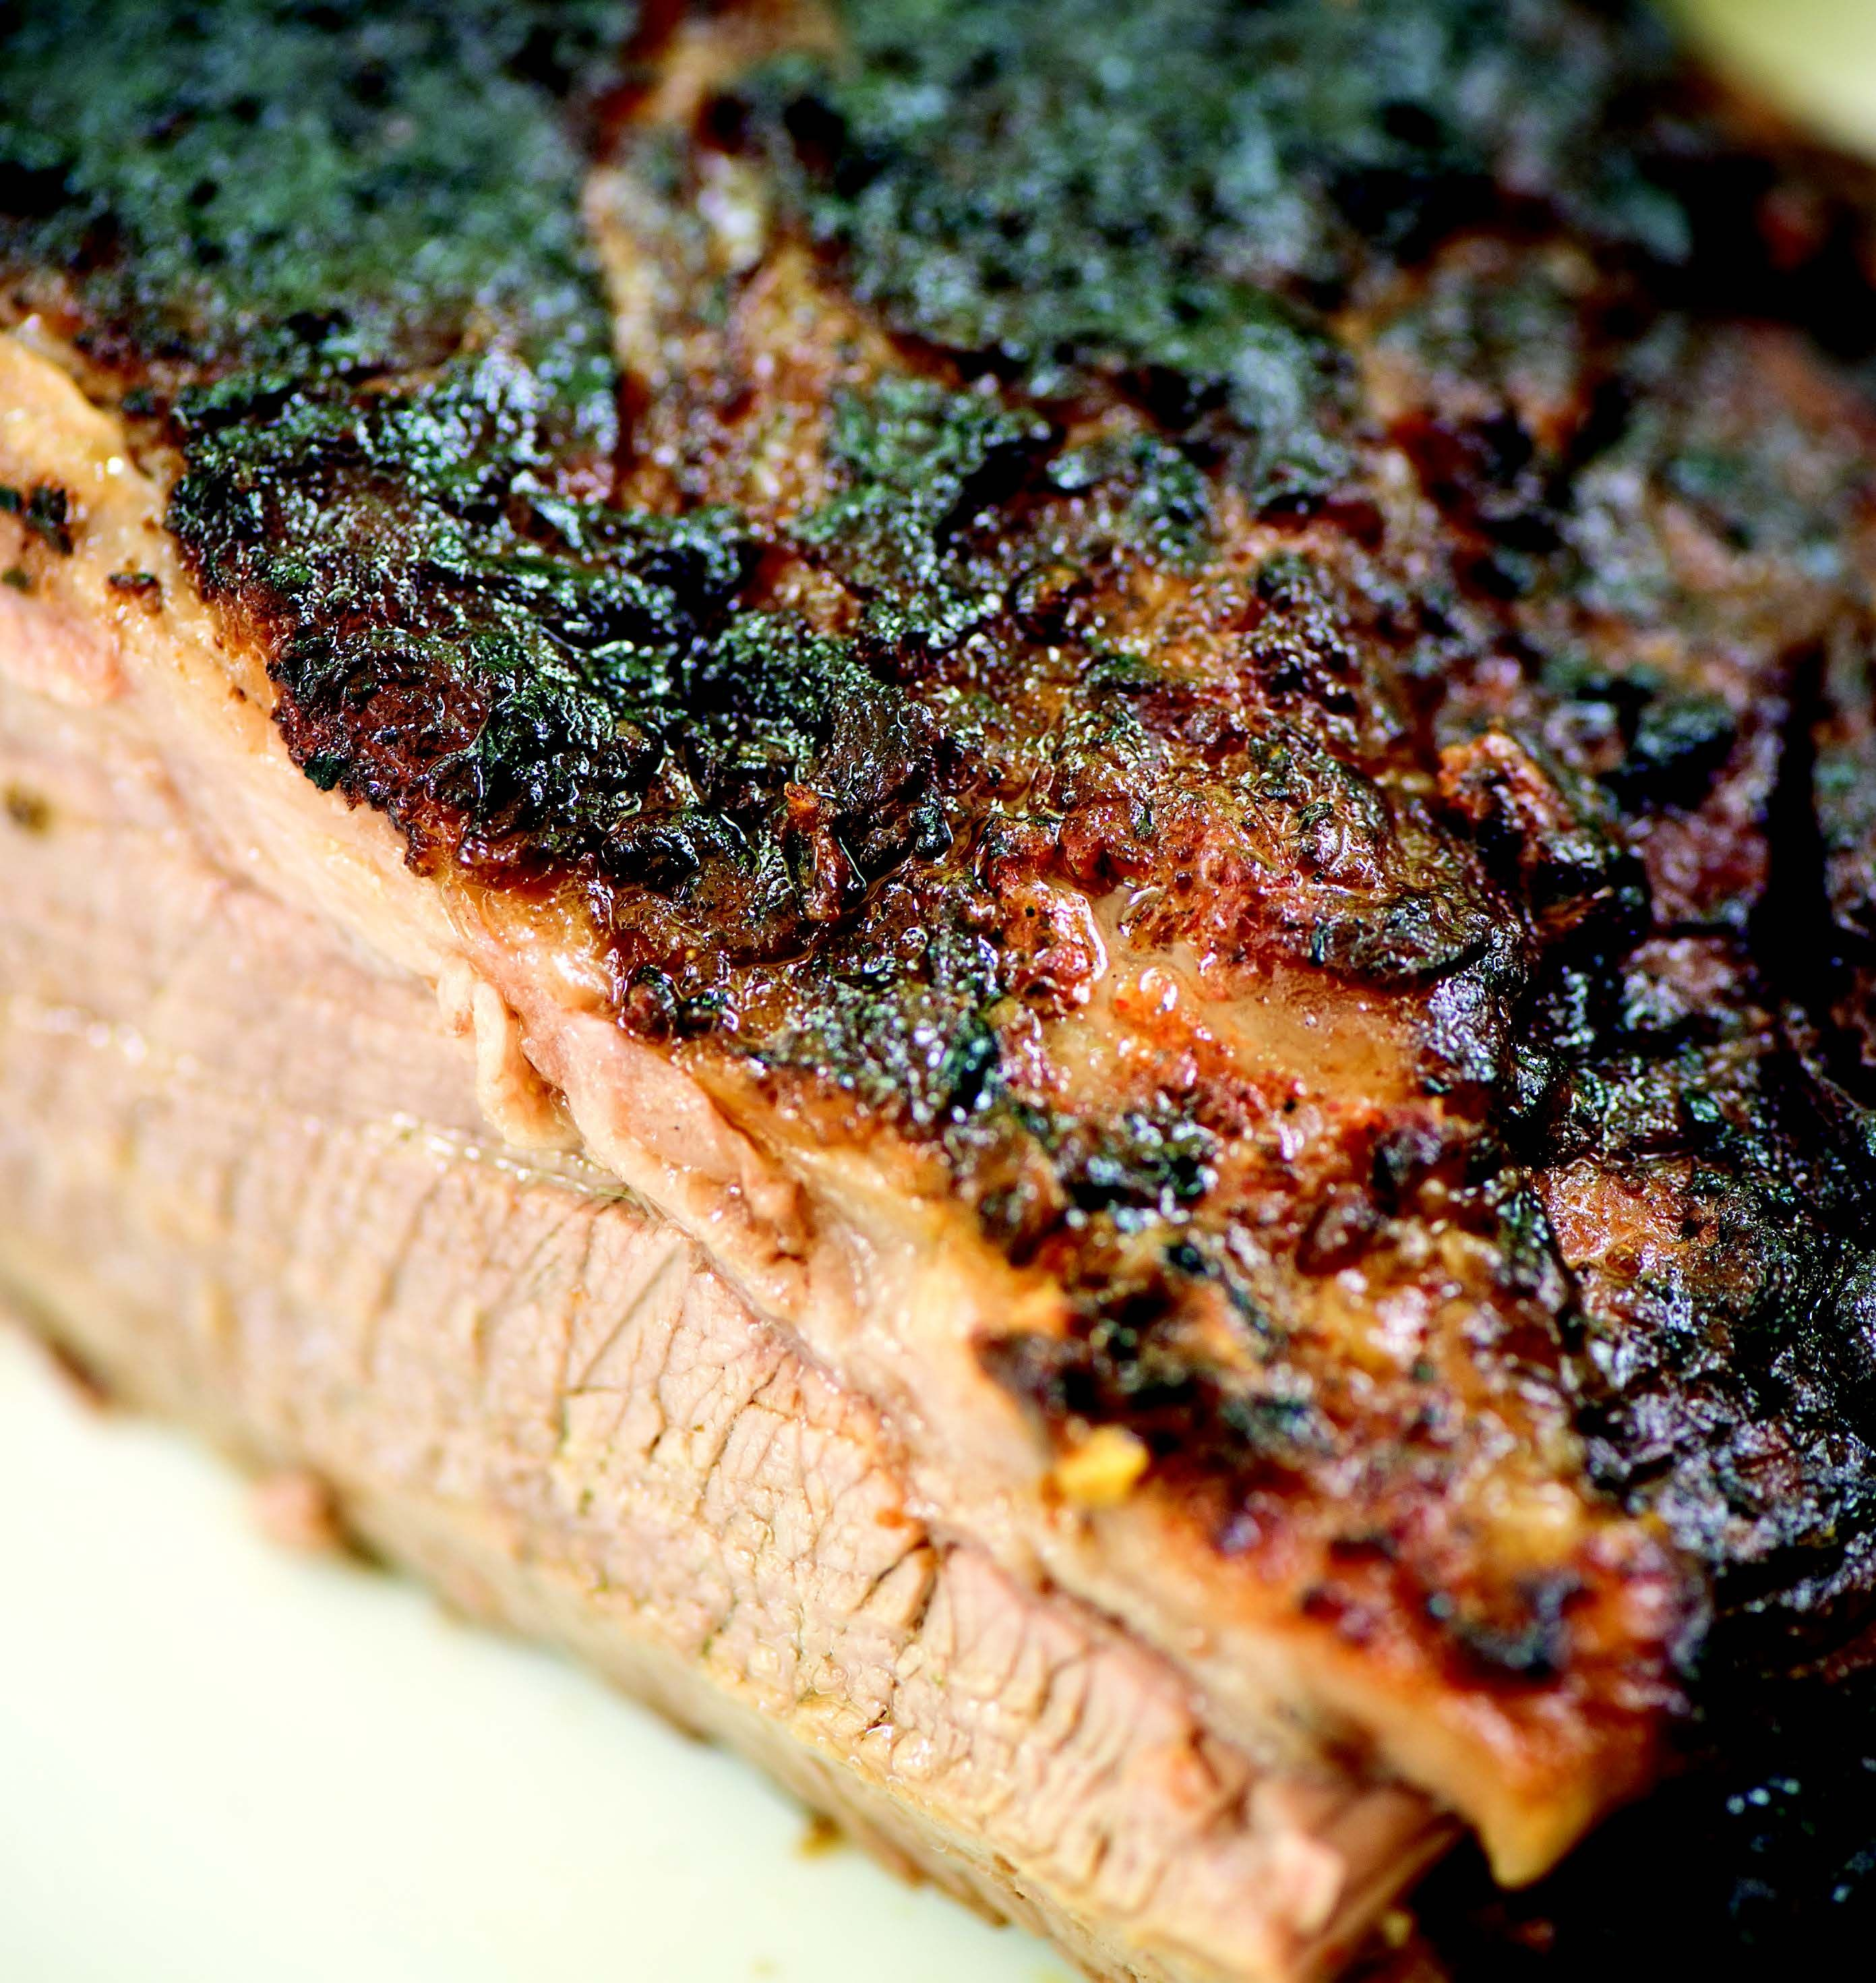 Spicy Grilled Brisket Masterbuilt Recipes Big Green